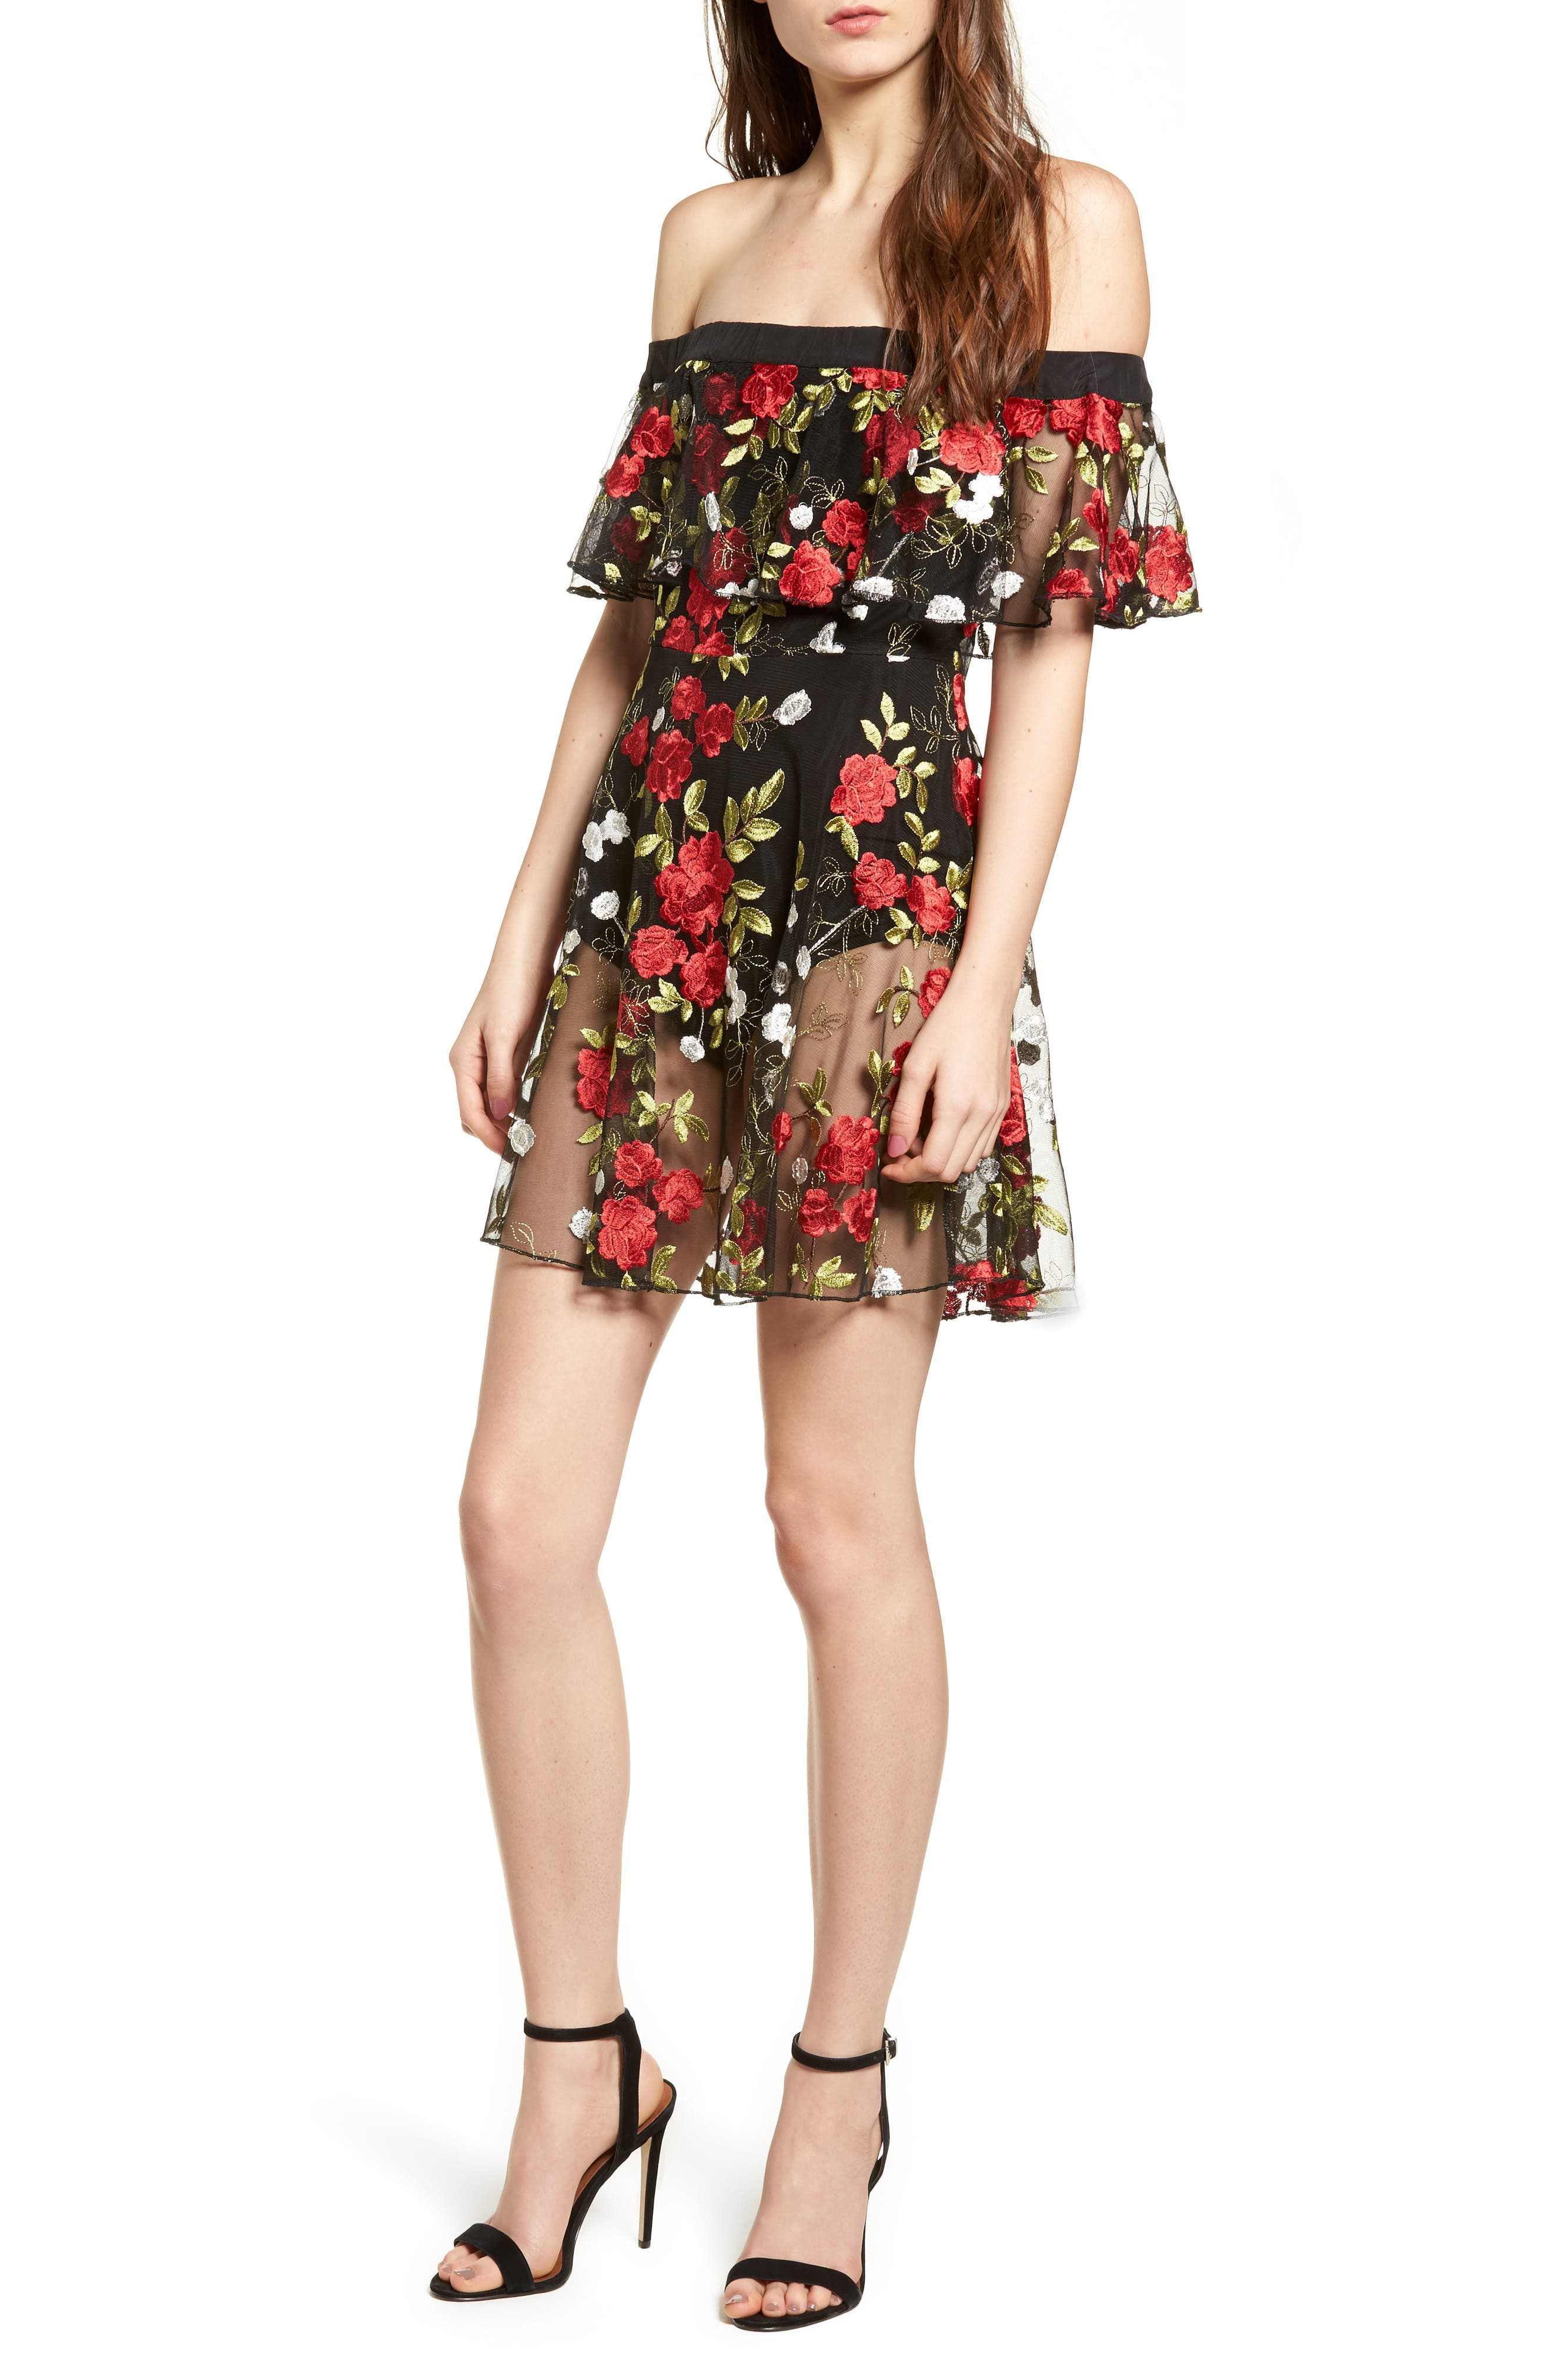 Main Image - Lovers + Friends Erica Sheer Embroidered A-Line Dress